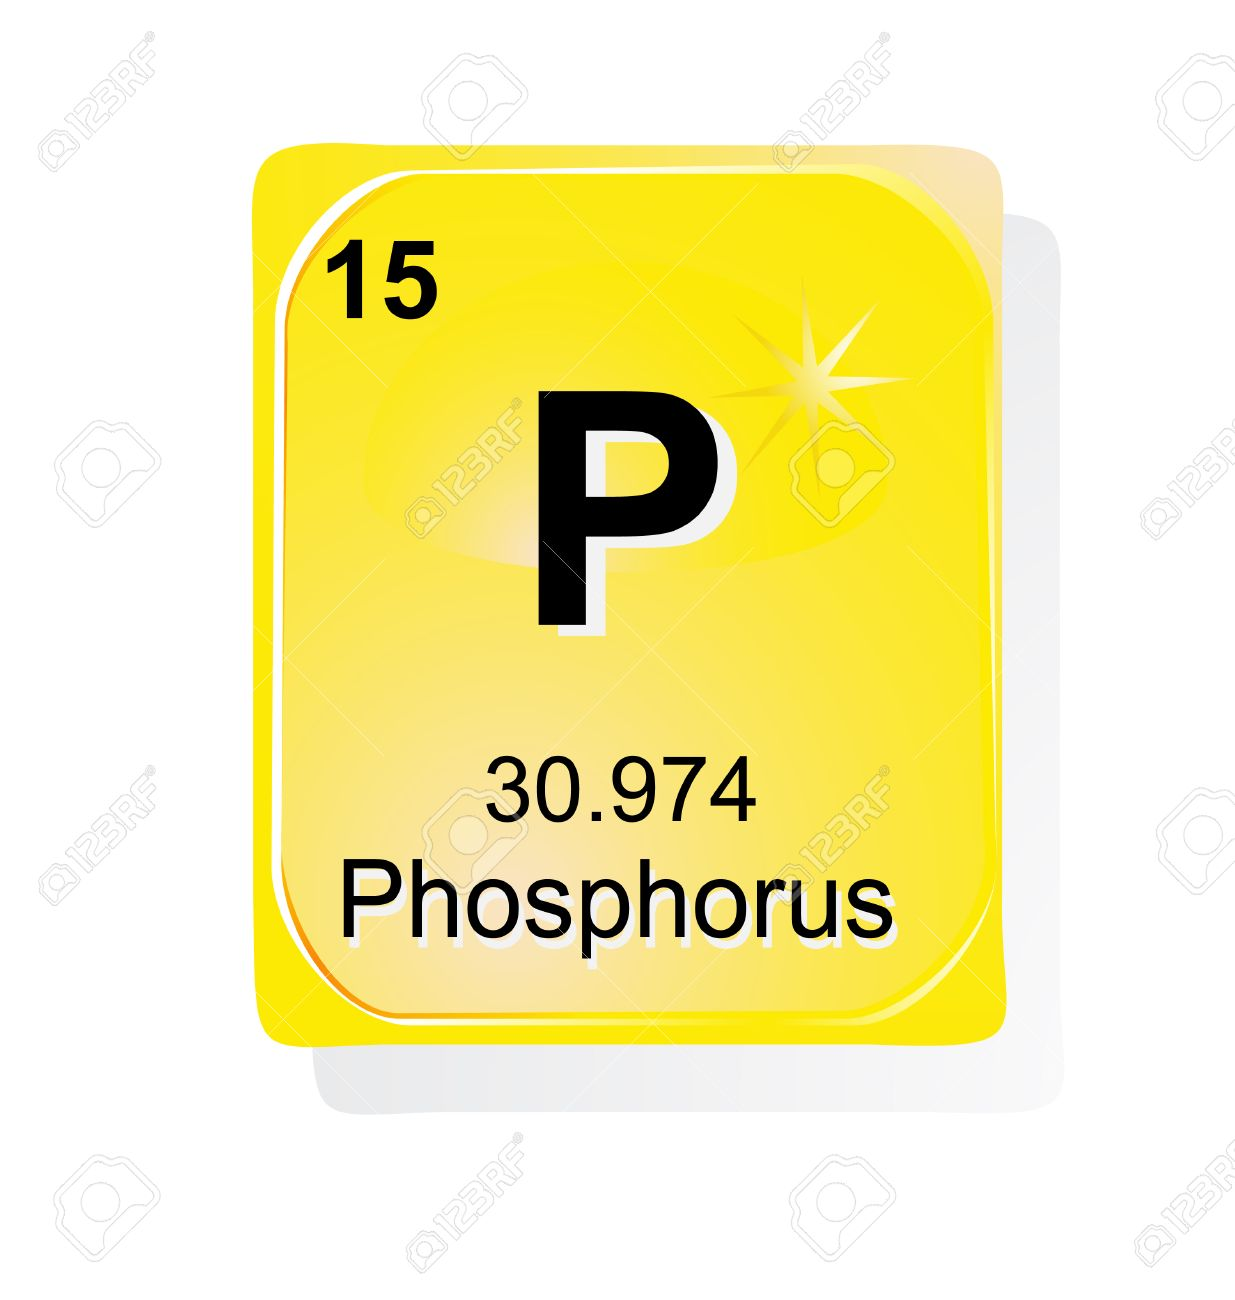 Phosphorus Chemical Element With Atomic Number Symbol And Weight